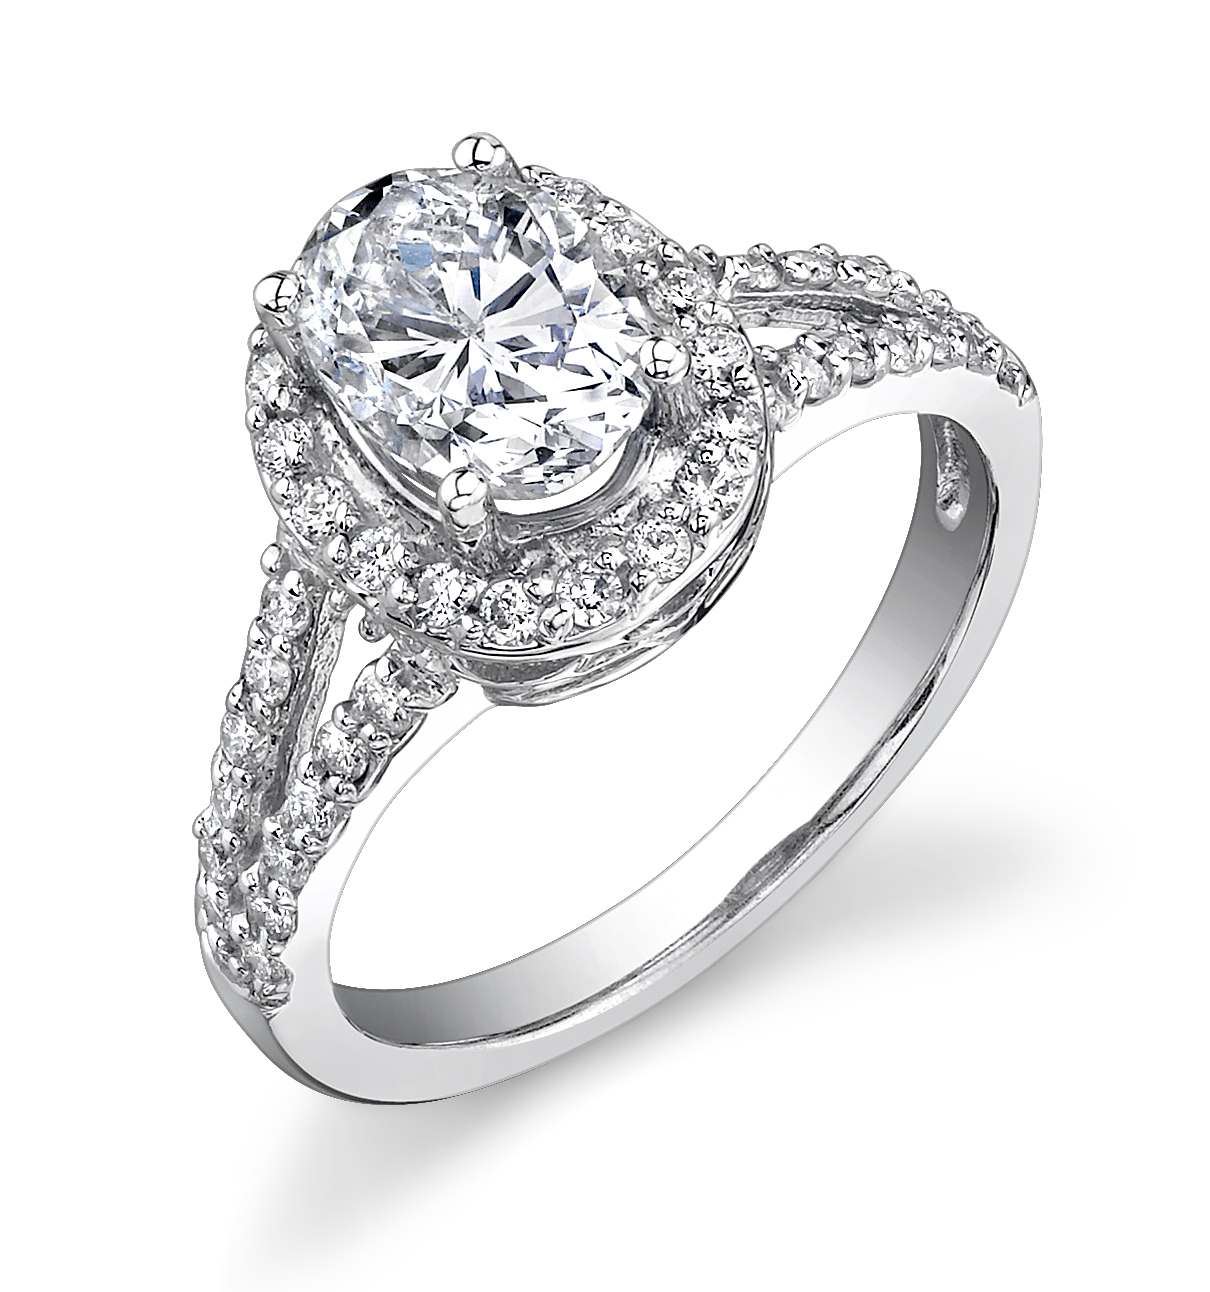 Jewelry, Engagement Rings, Ring, Engagement, Loose, Diamonds, Fine, Mizrahi diamonds